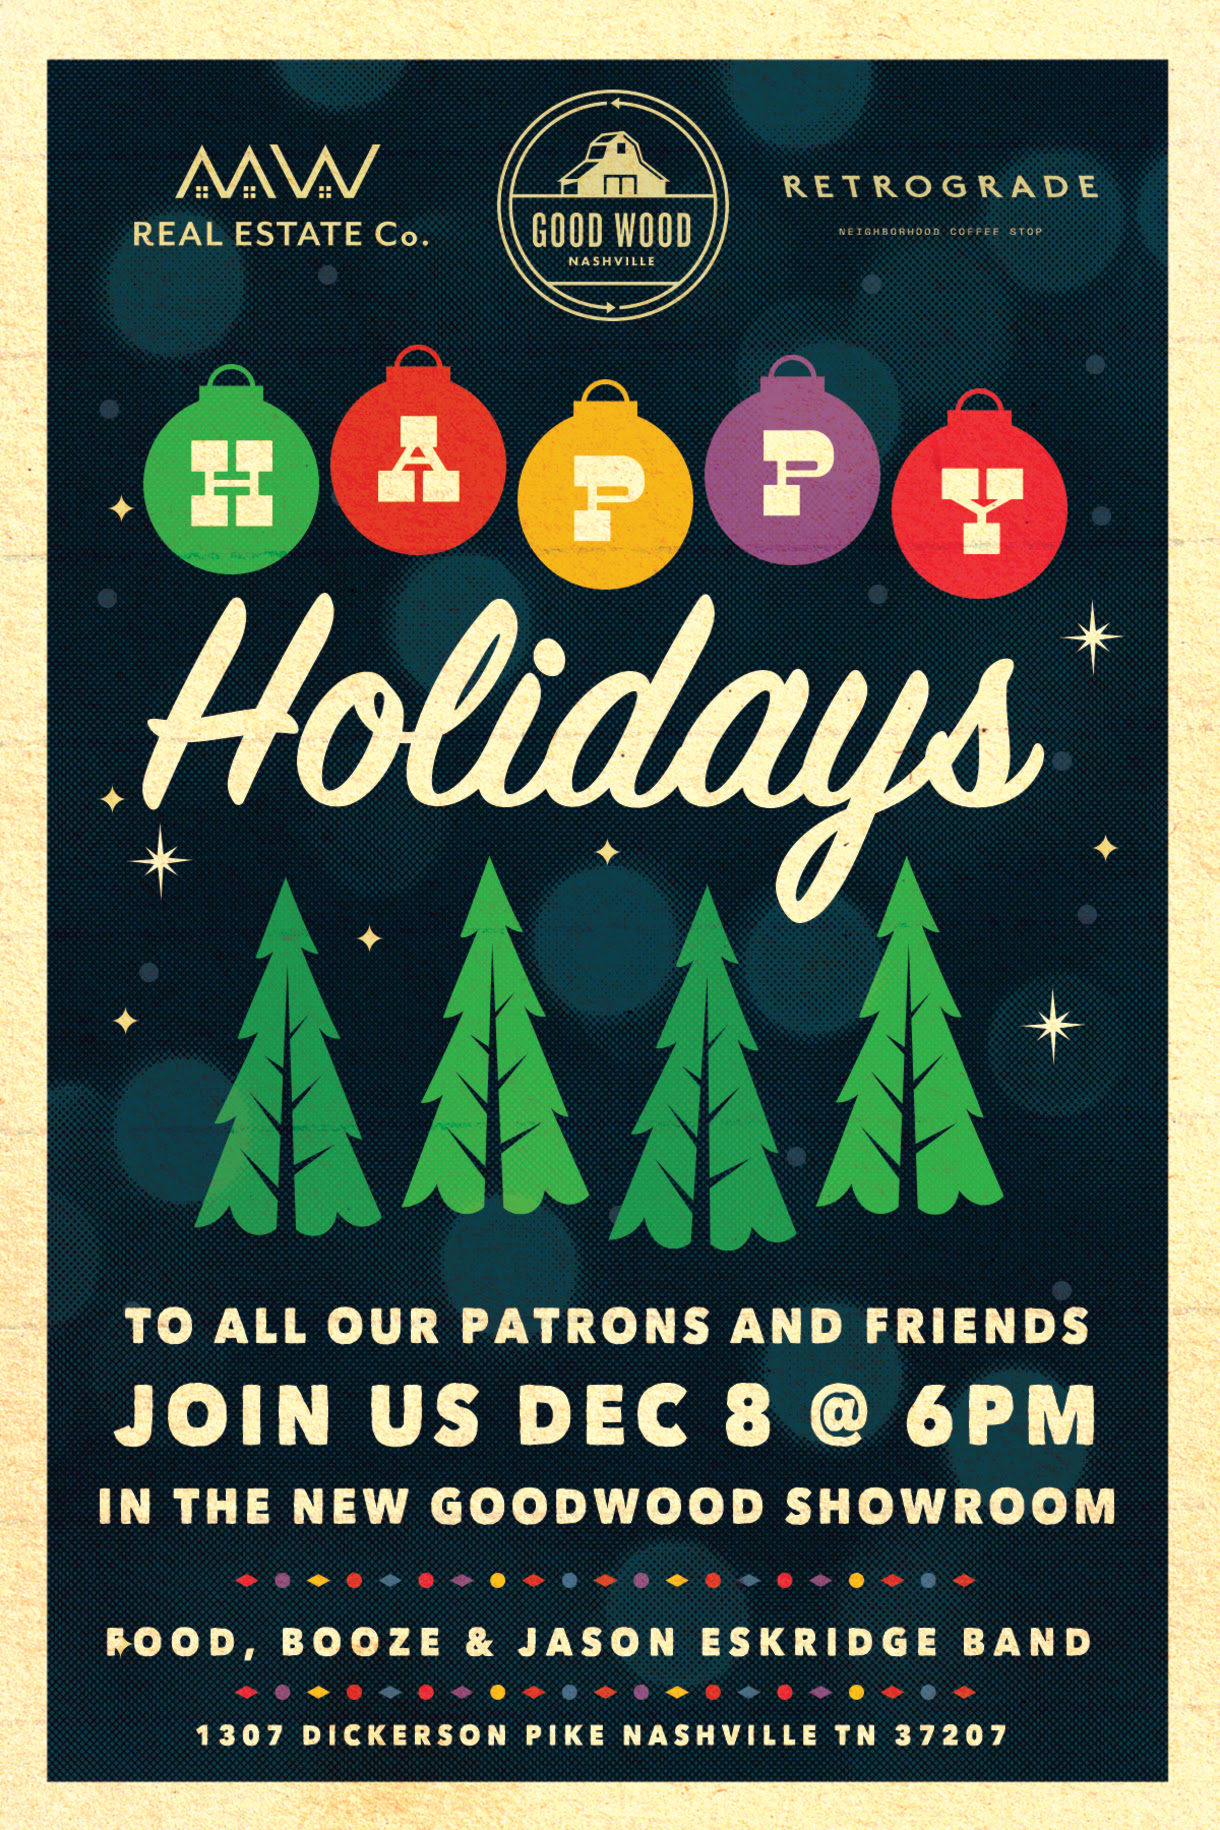 You are invited to our Holiday Party Open House December 8th at 6pm.